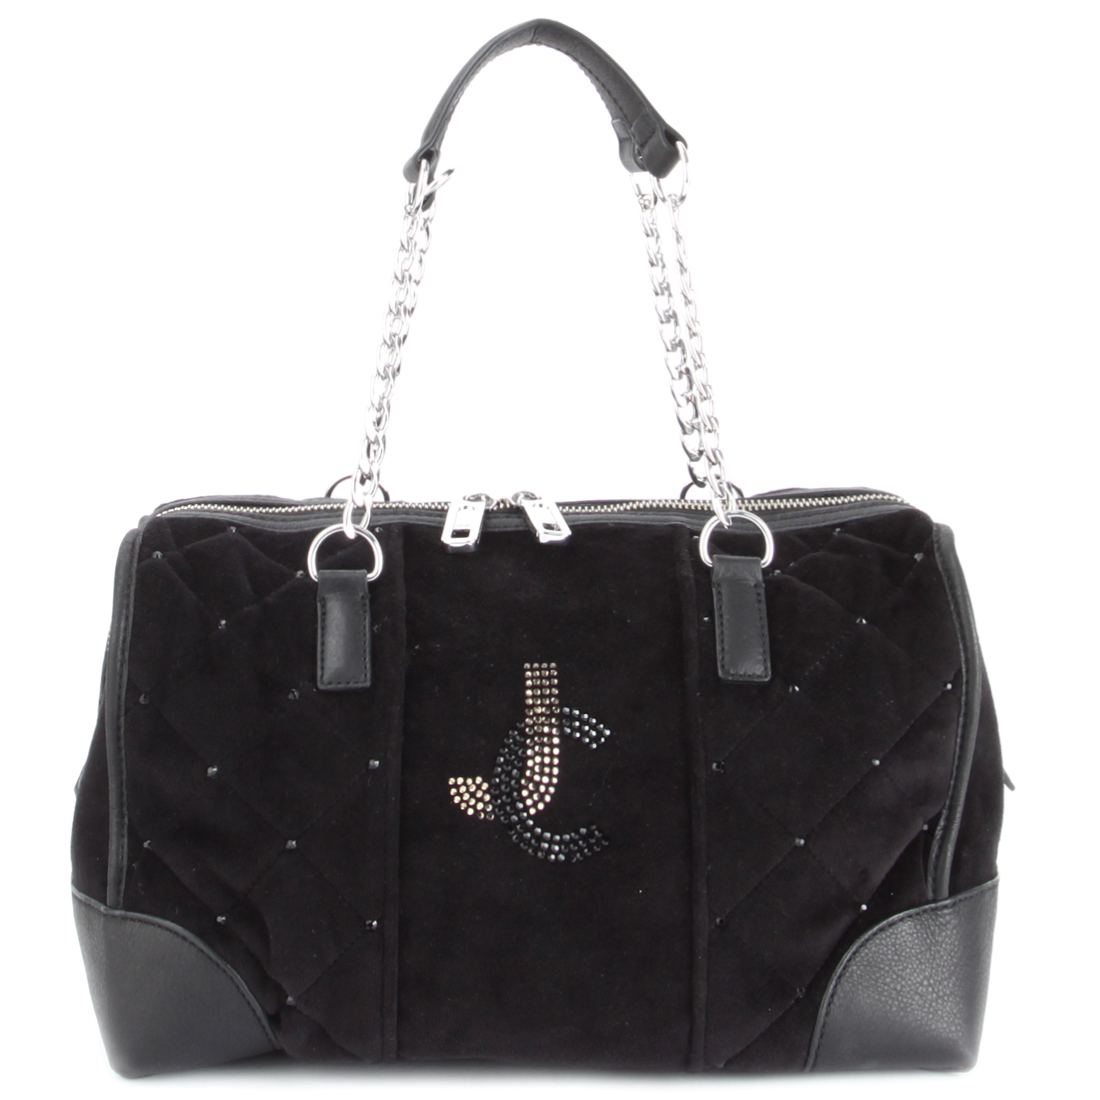 Juicy Couture Steffy Quilted Handbag-Black